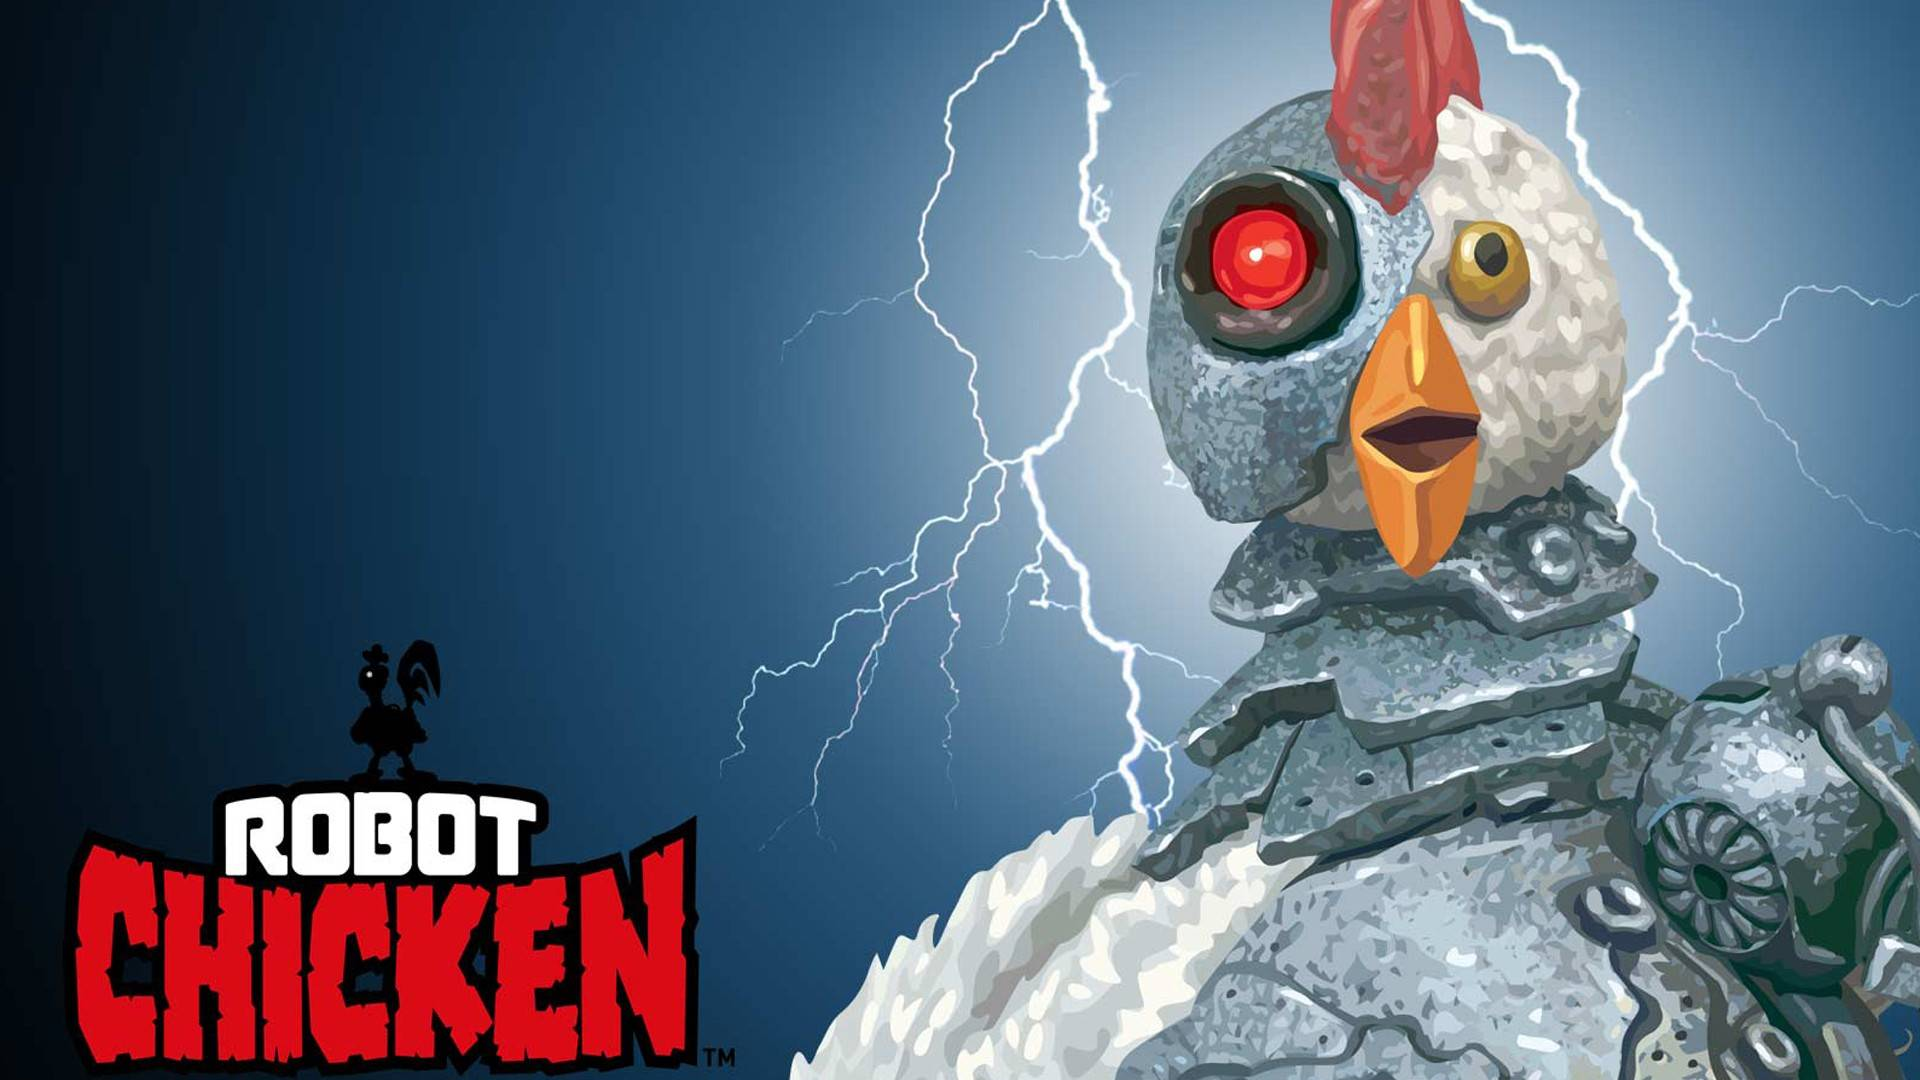 Funny Chicken Quotes Quotesgram: Robot Chicken Funny Quotes. QuotesGram